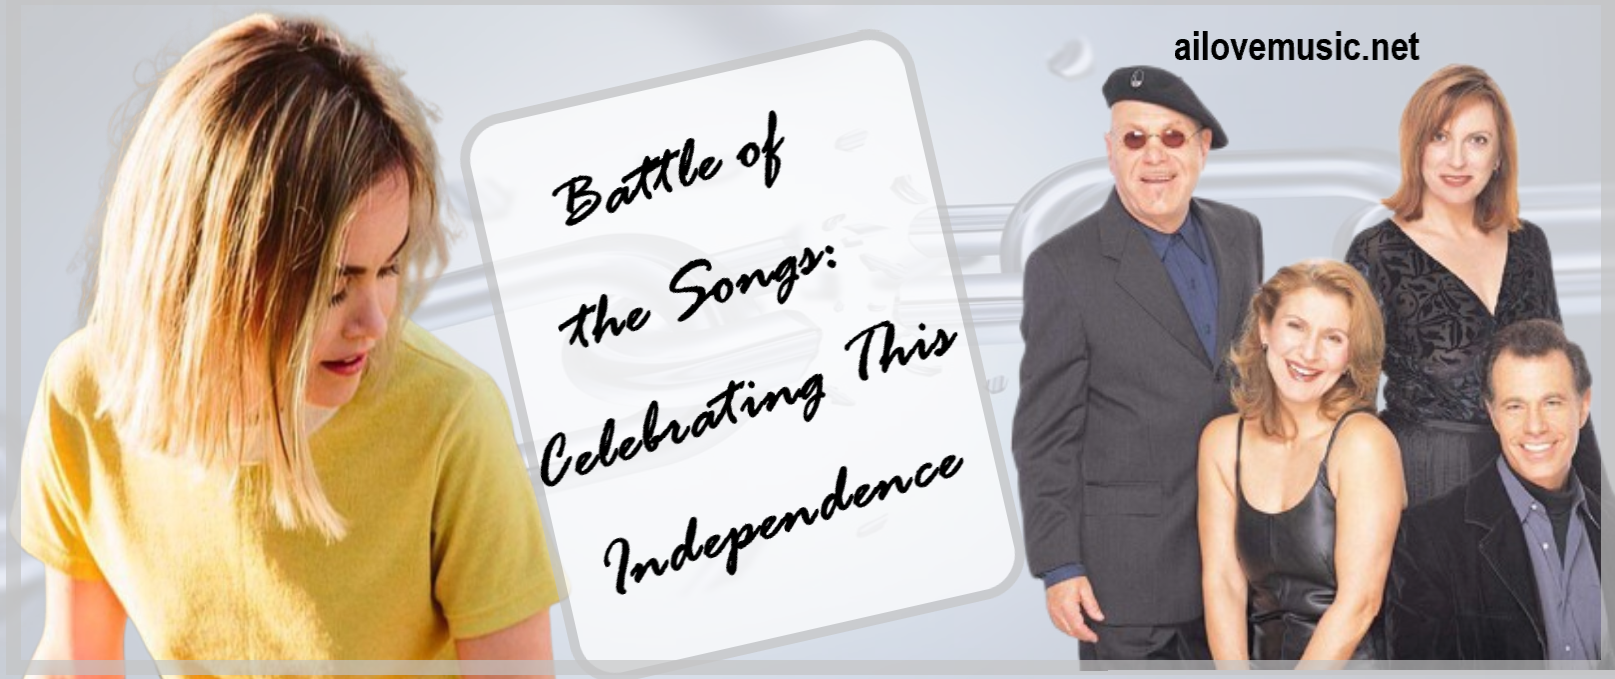 Battle of the Songs: Celebrating This Independence